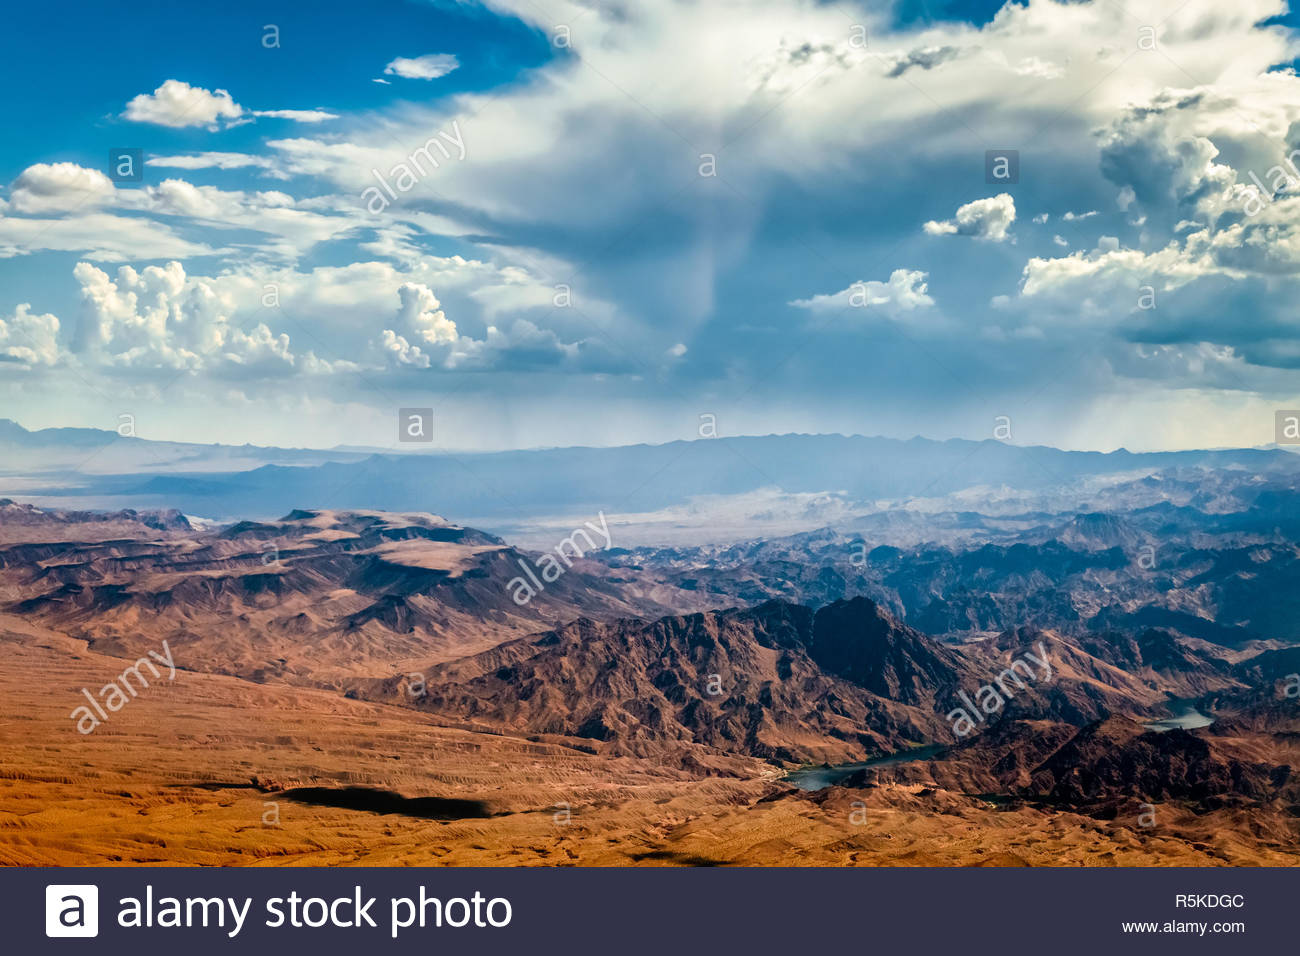 Storm Approaching Mountains near Las Vegas Stock Photo